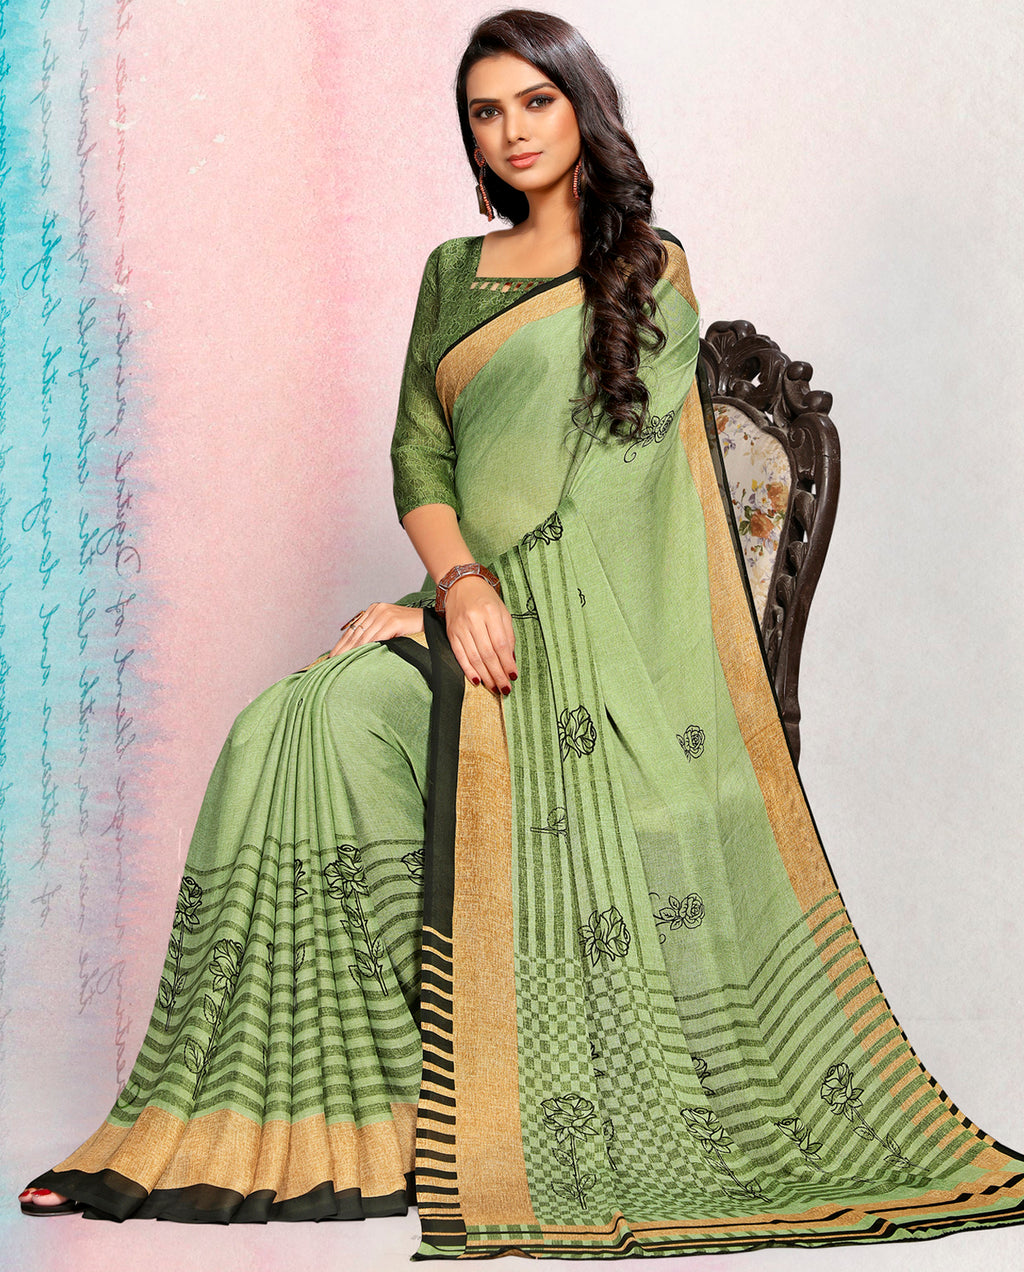 Green Color Crepe Printed Kitty Party Sarees NYF-9500